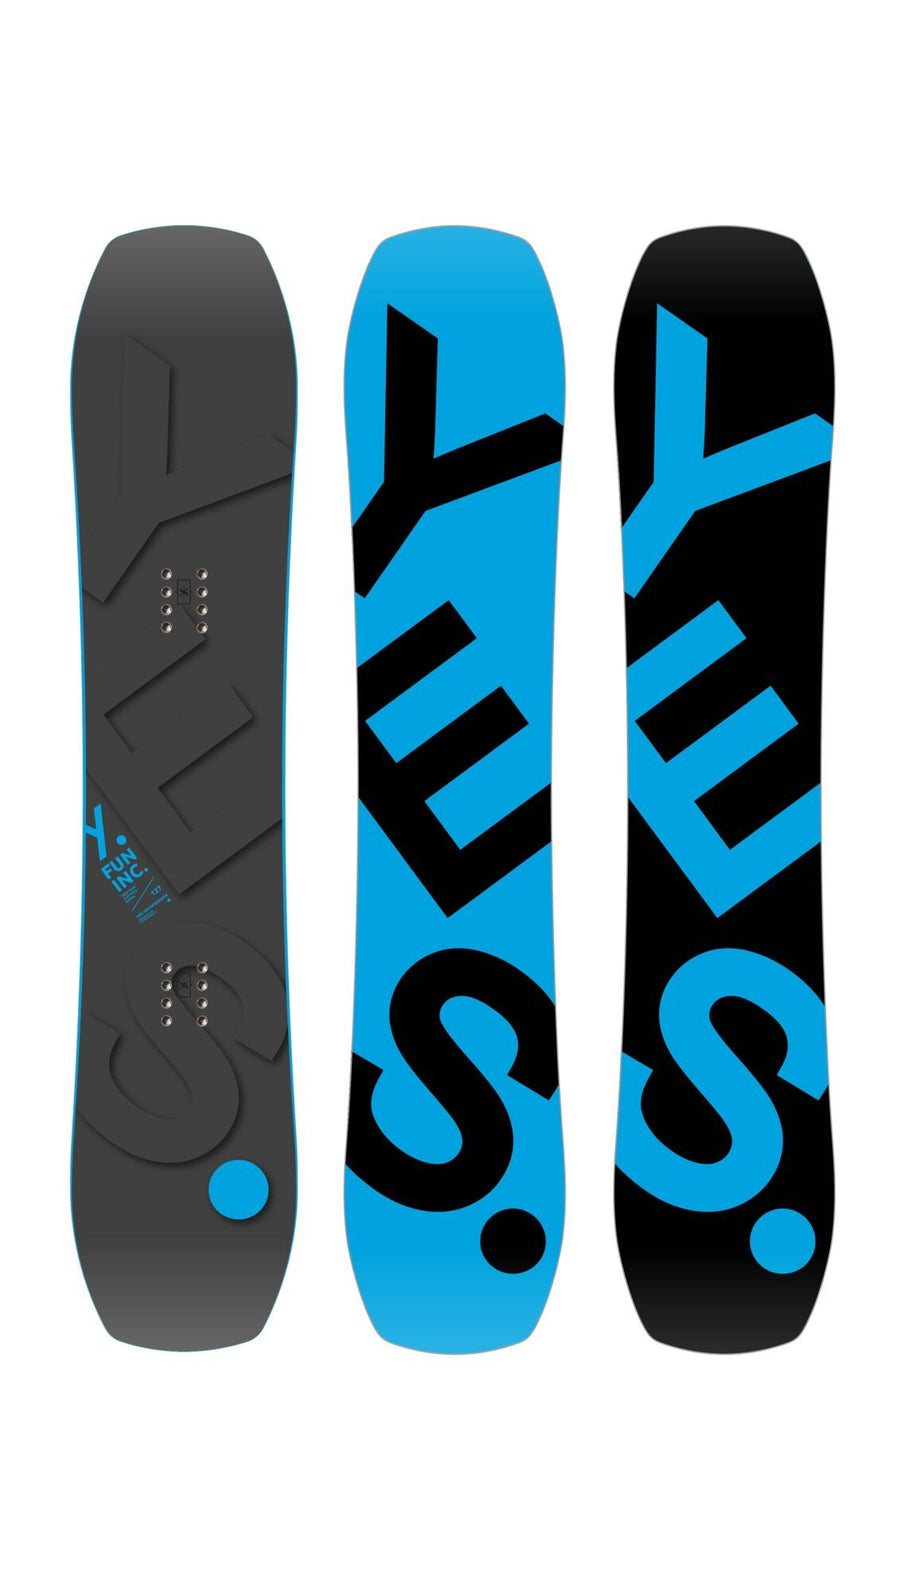 YES FunInc Youth Snowboard 2021 Snowboards - Youth Snowboards Yes Snowboards